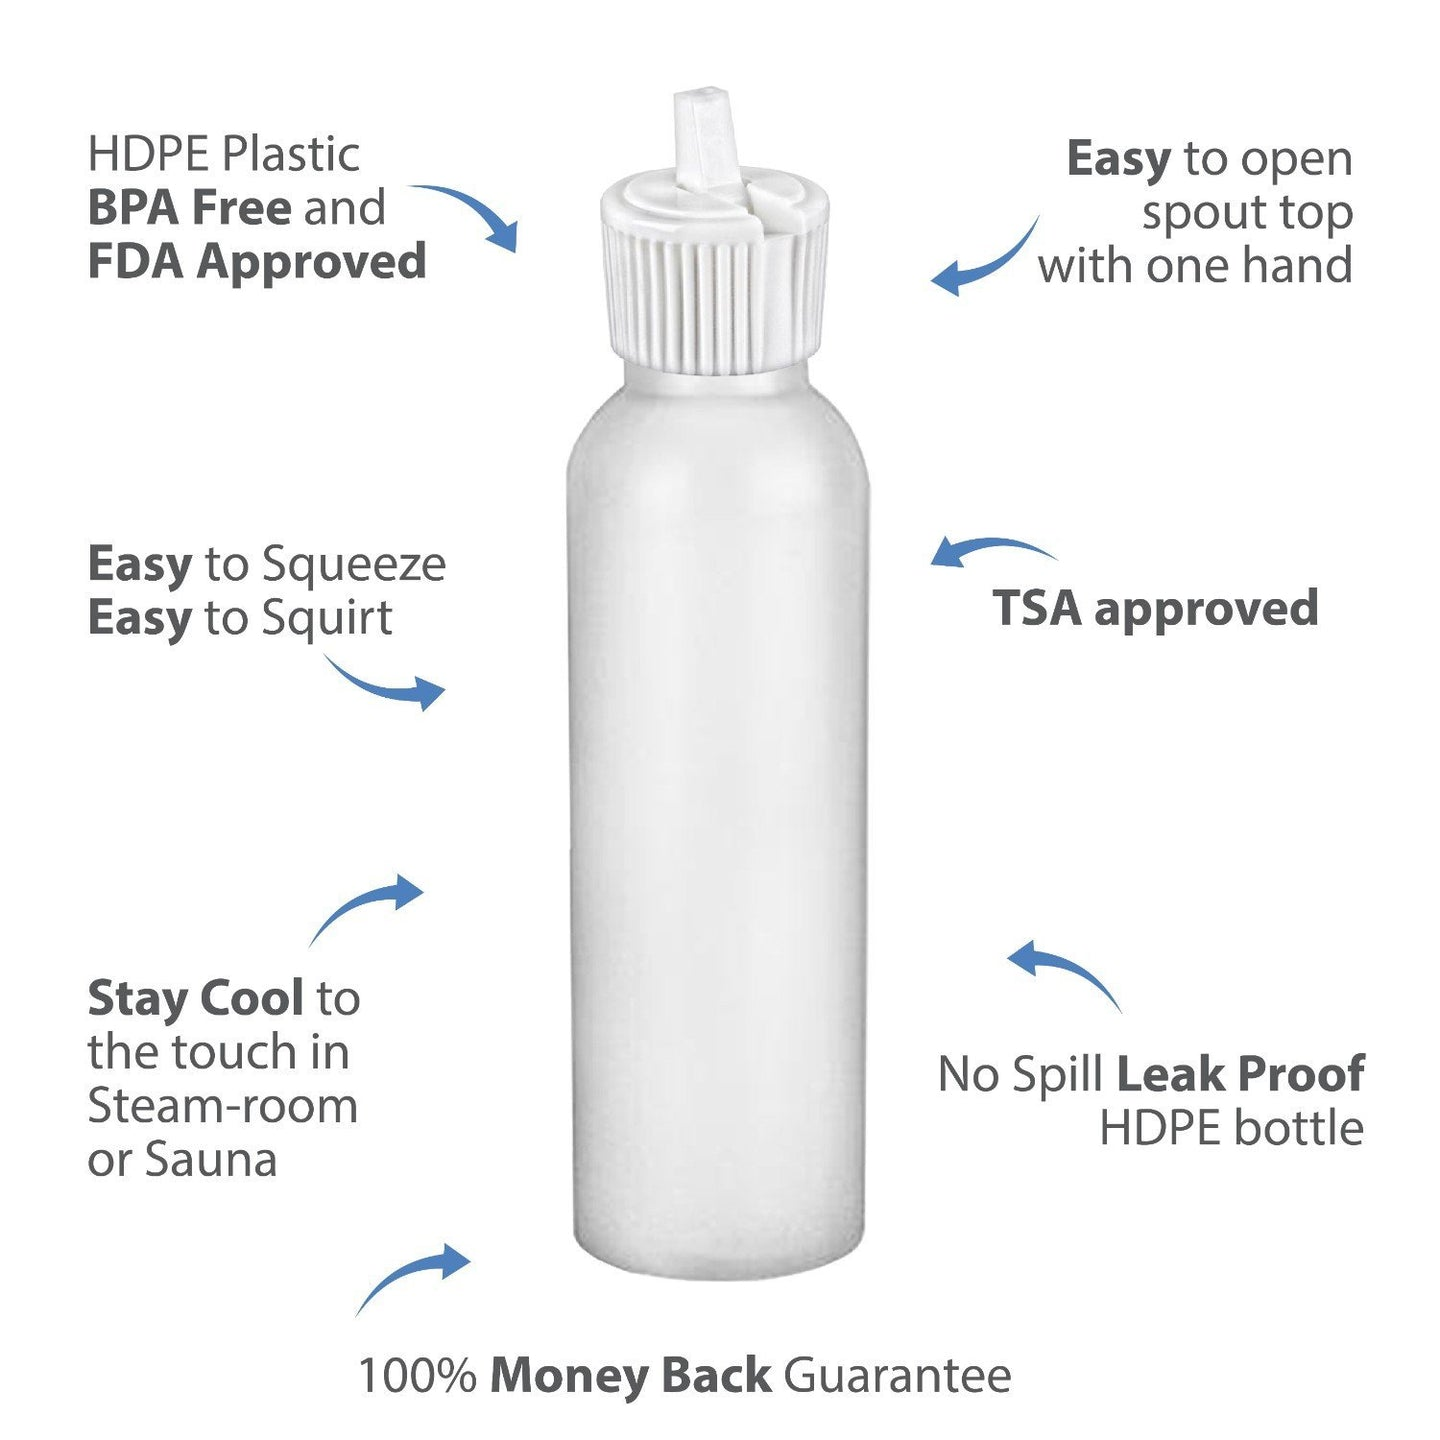 MoYo Natural Labs 2 oz Squirt Bottles, Squeezable Empty Travel Containers, BPA Free HDPE Plastic for Essential Oils and Liquids, Toiletry/Cosmetic Bottles (12 Pack, Translucent White)